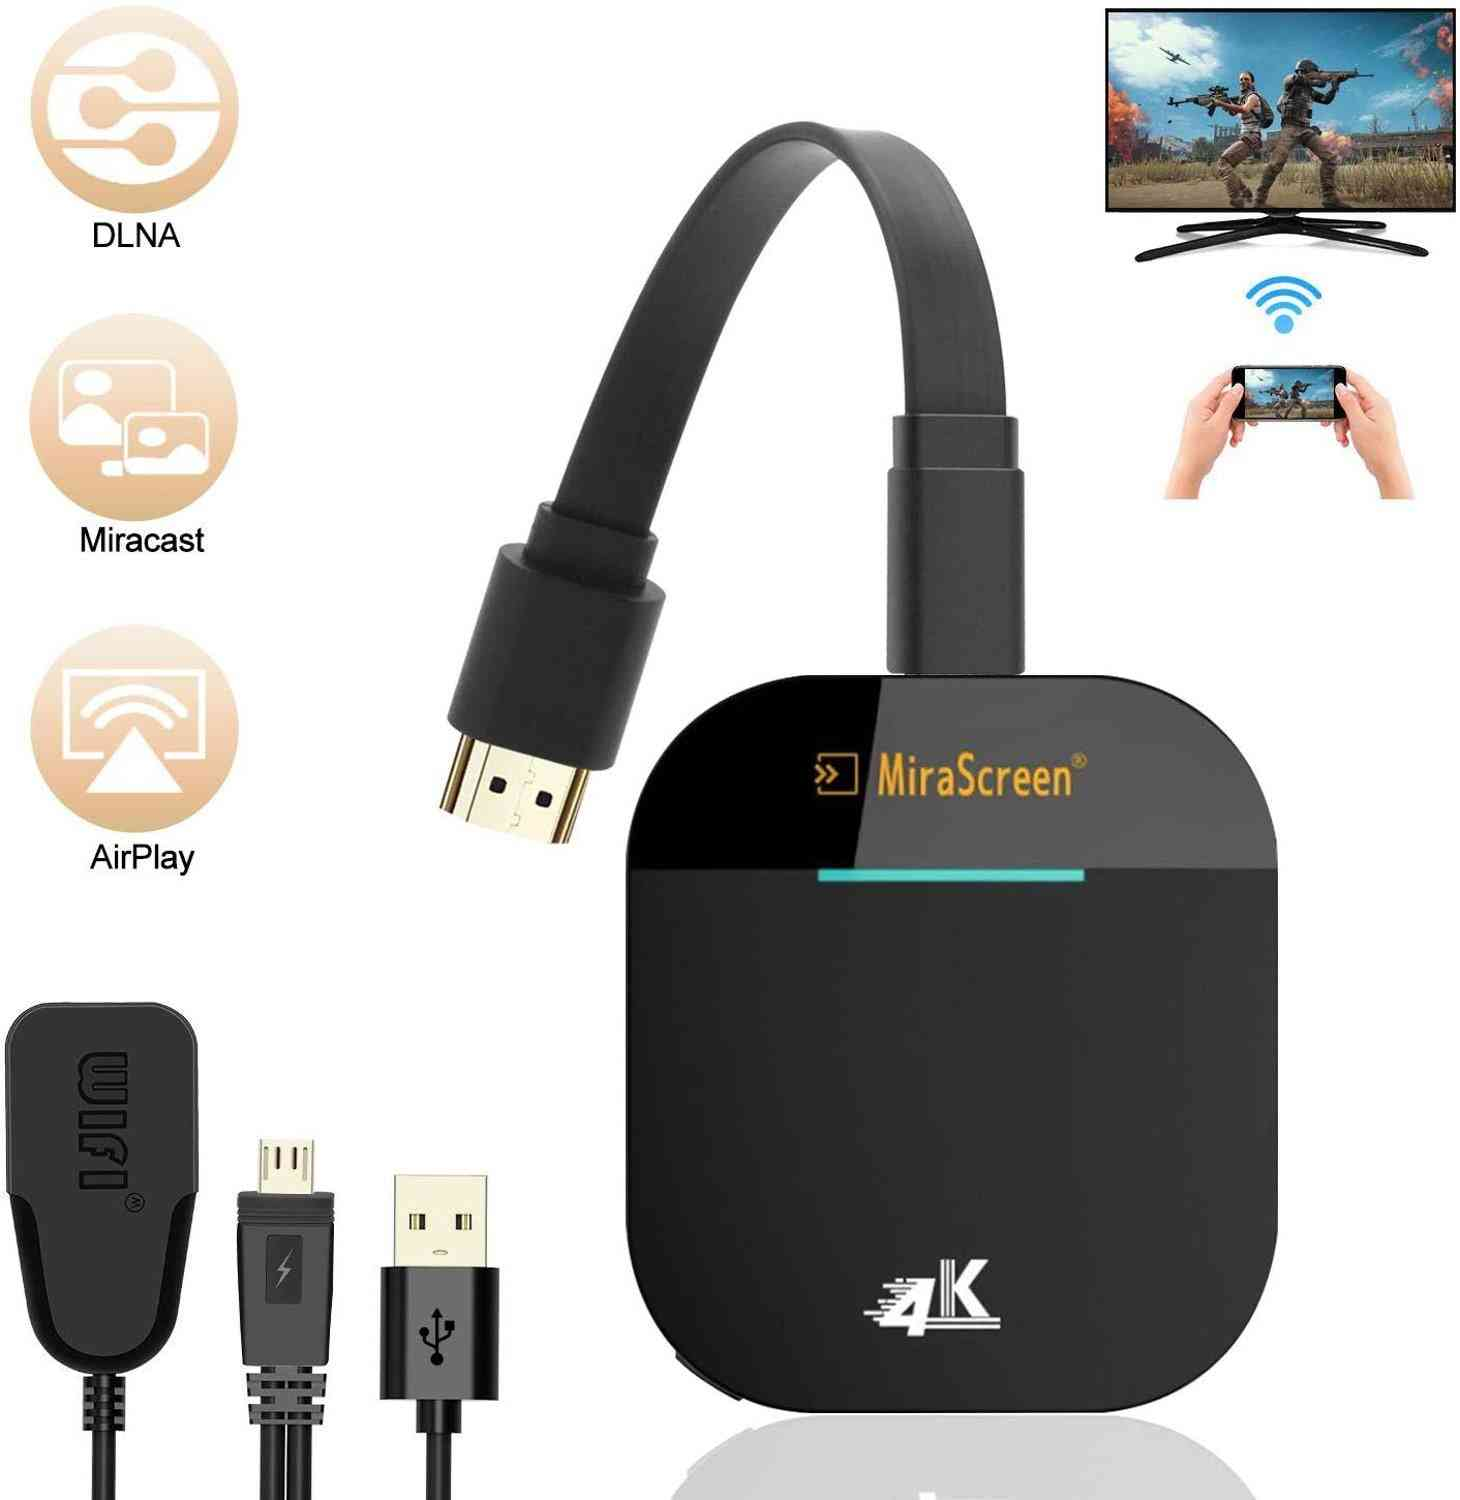 Mirascreen G5 2.4g 5g 1080p 4k Wireless Hdmi Dongle Tv Stick, Miracast Airplay Receiver Wifi Dongle Mirror Screen Cast